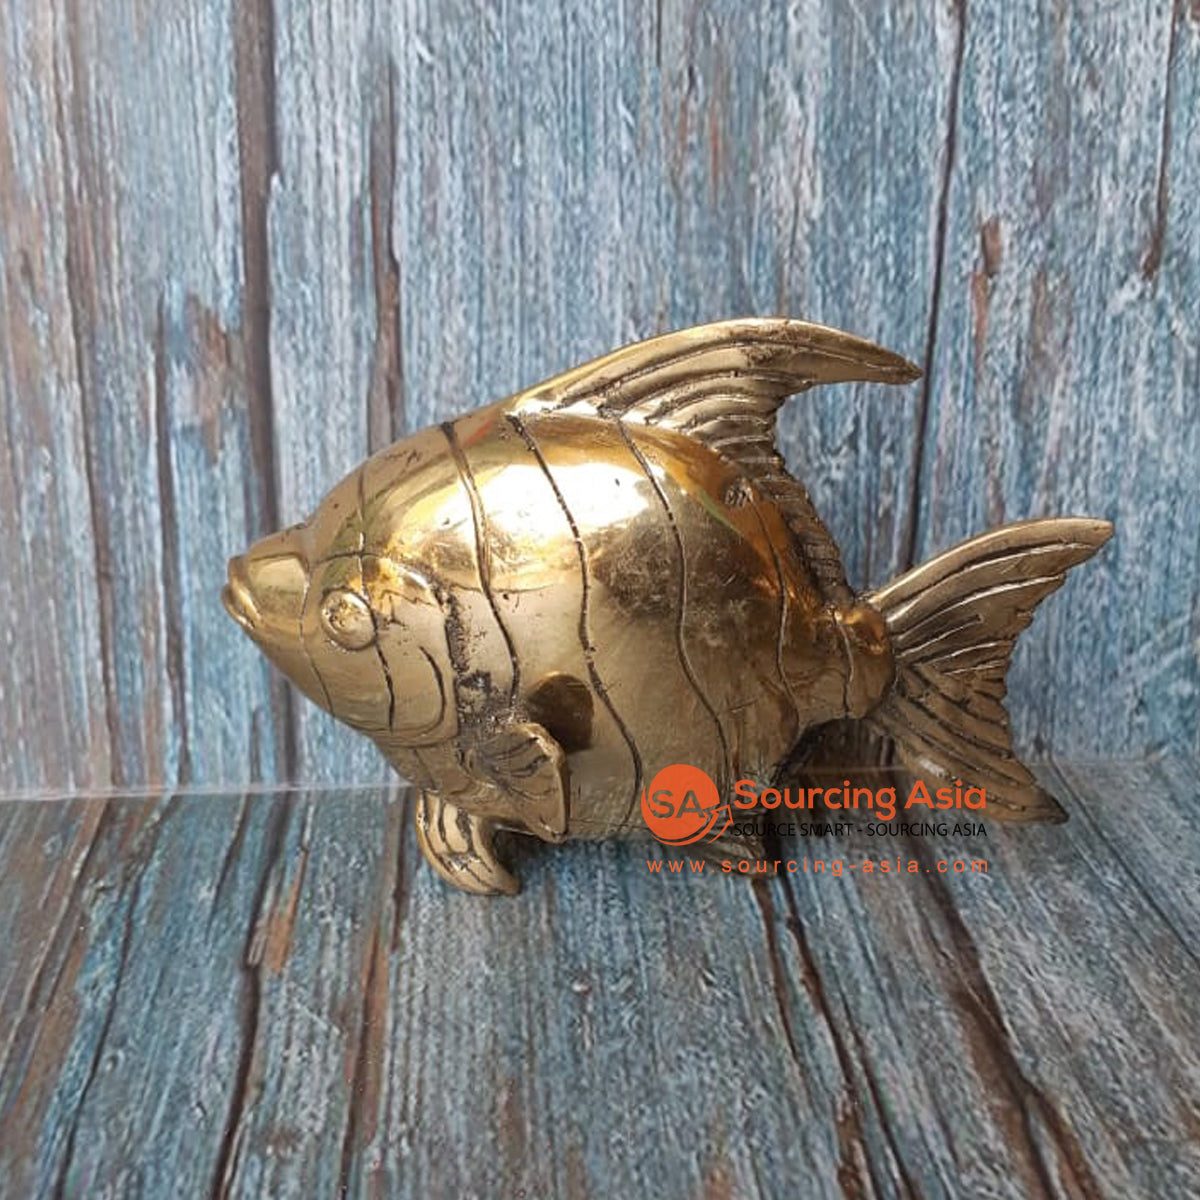 GB168 BRONZE FISH